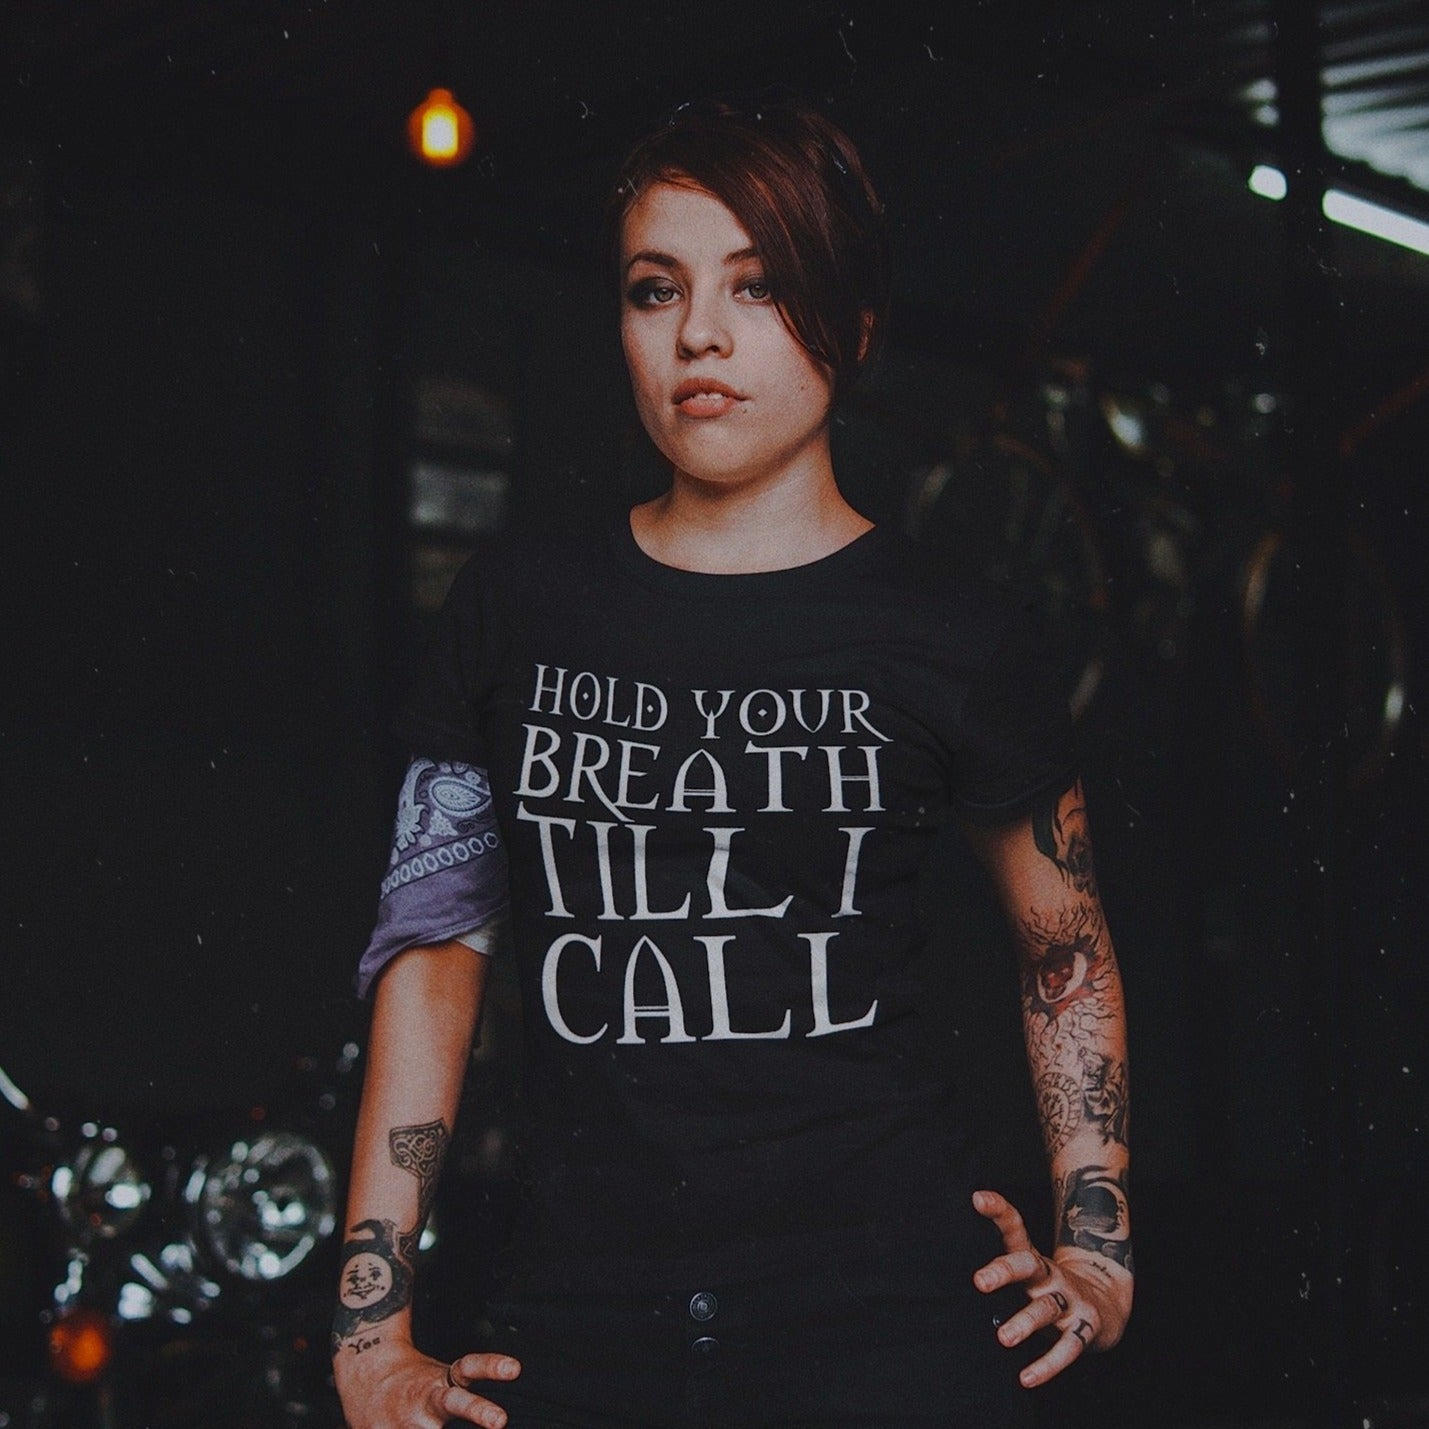 Hold Your Breath Till I Call... - The Craft Inspired Horror Movie Unisex Tee